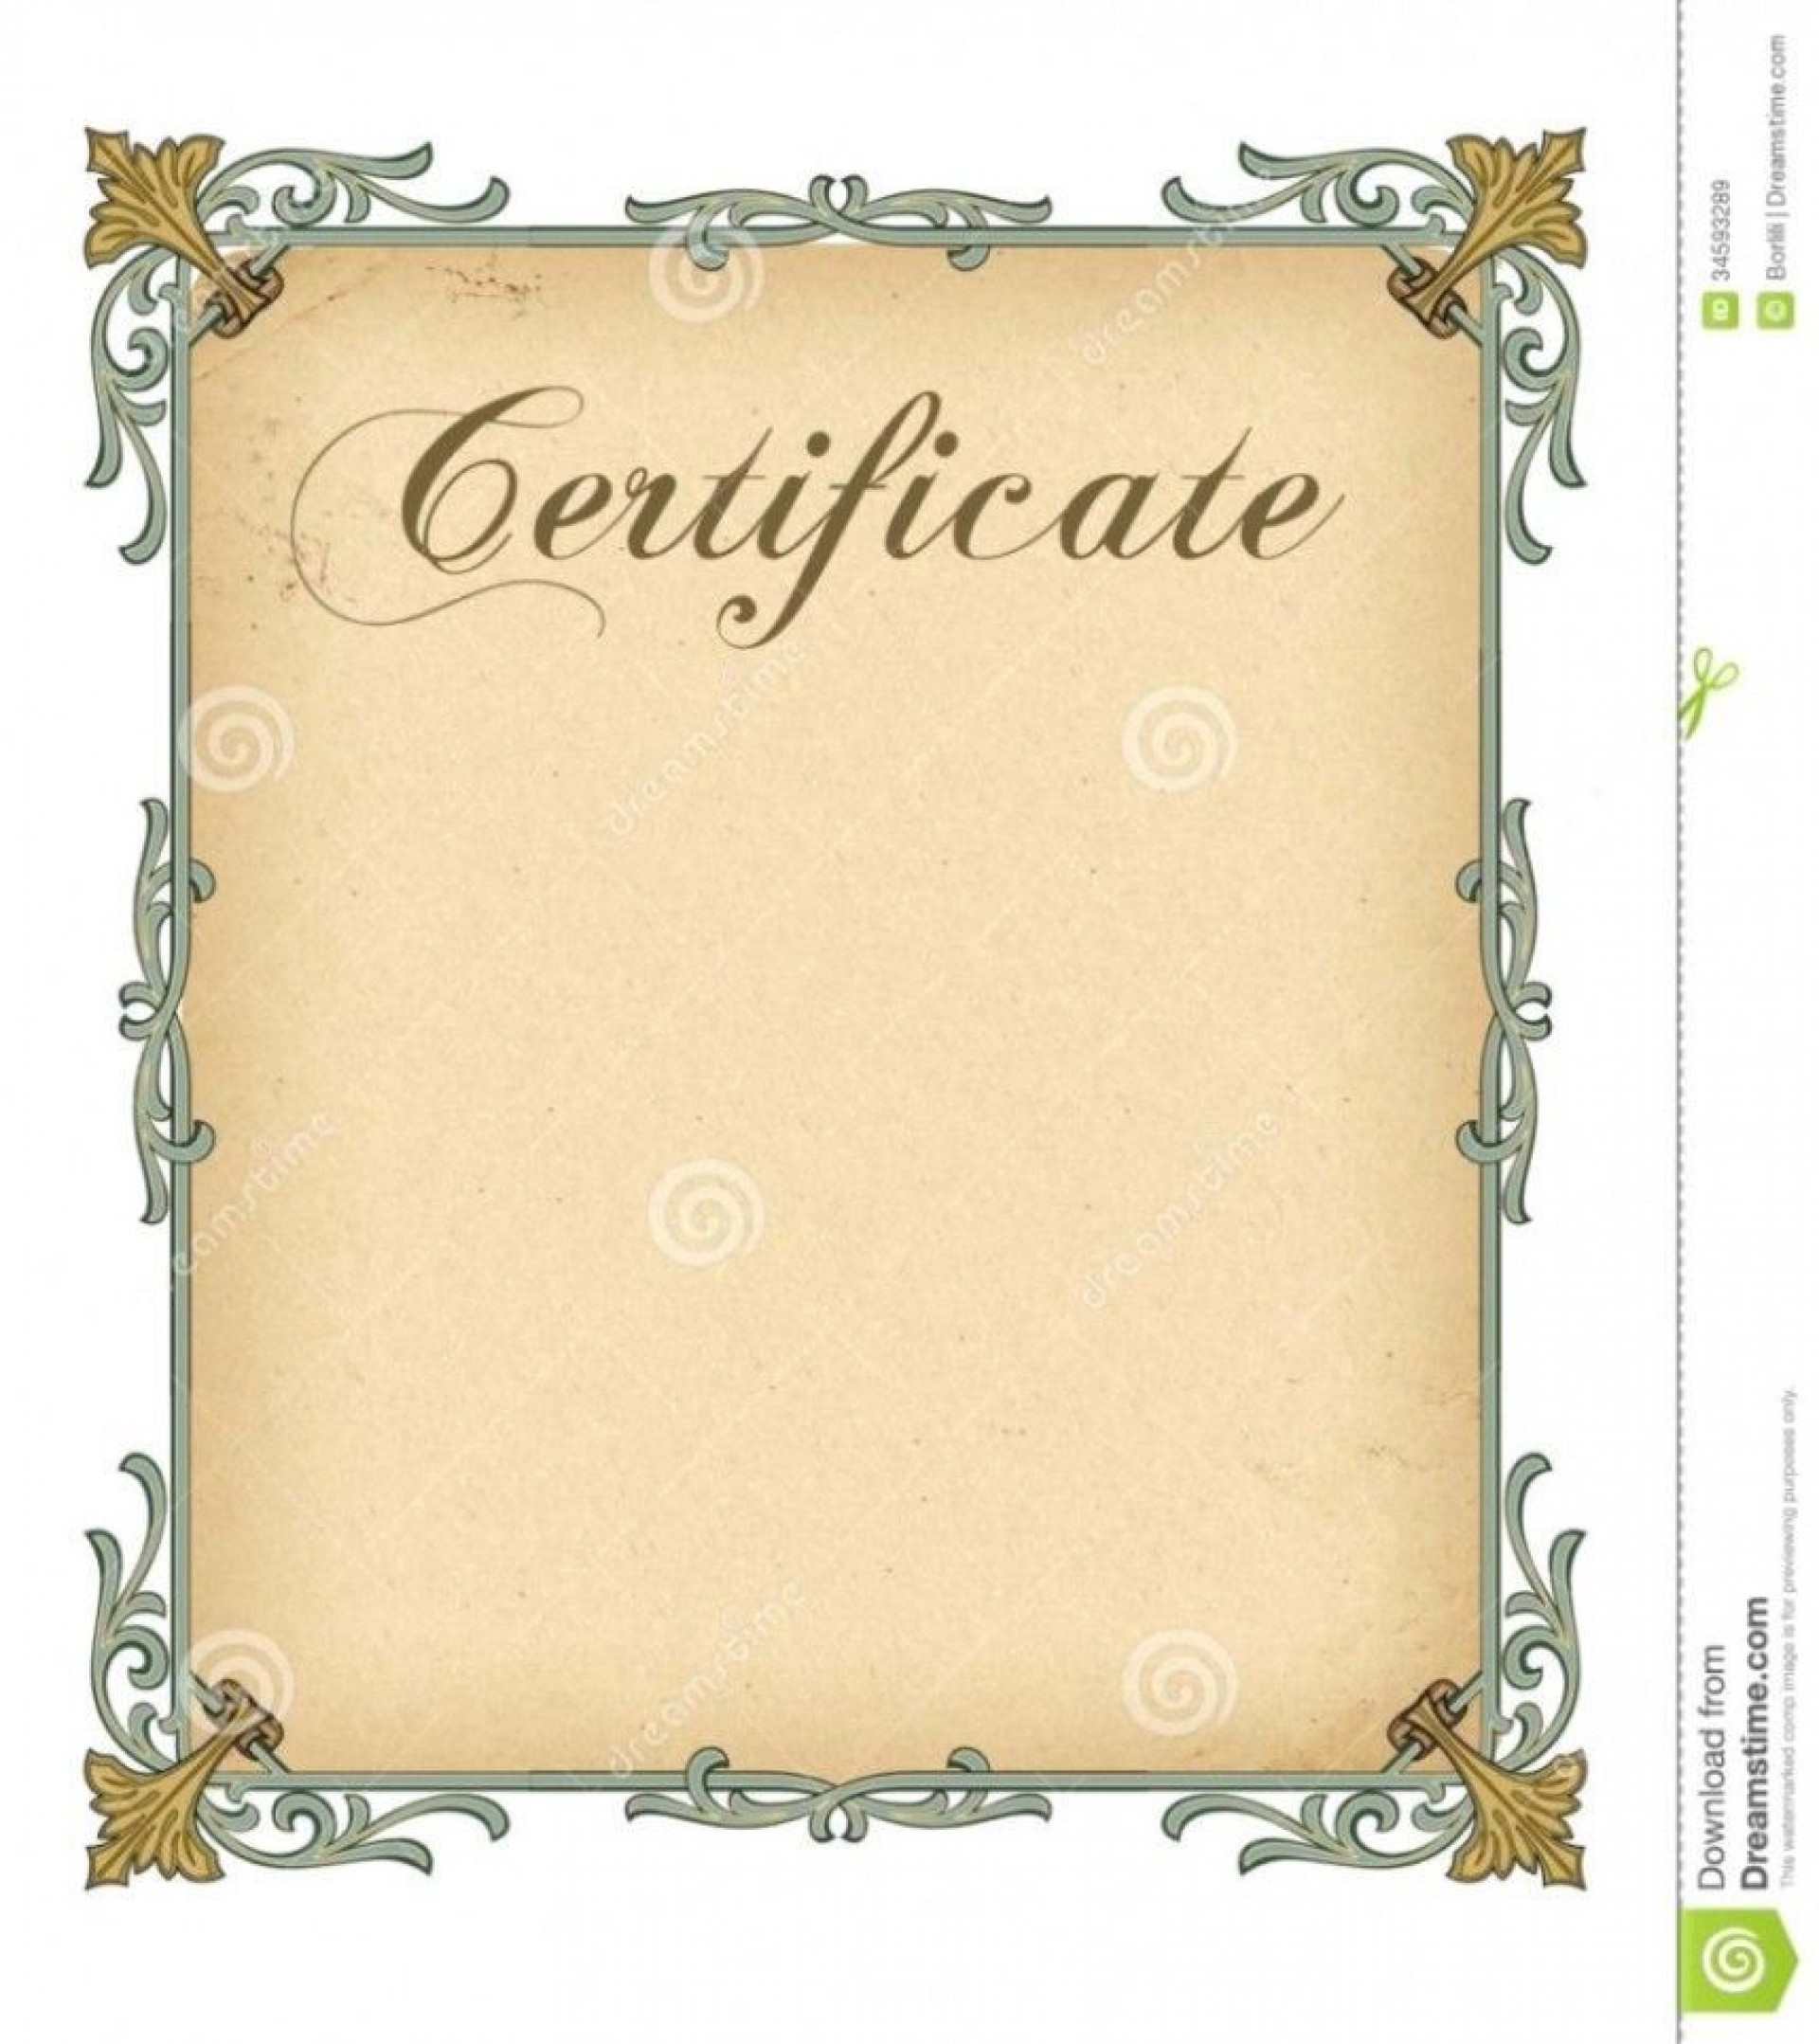 000 Staggering Free Printable Blank Certificate Template High Resolution  Templates Gift Of Achievement1920